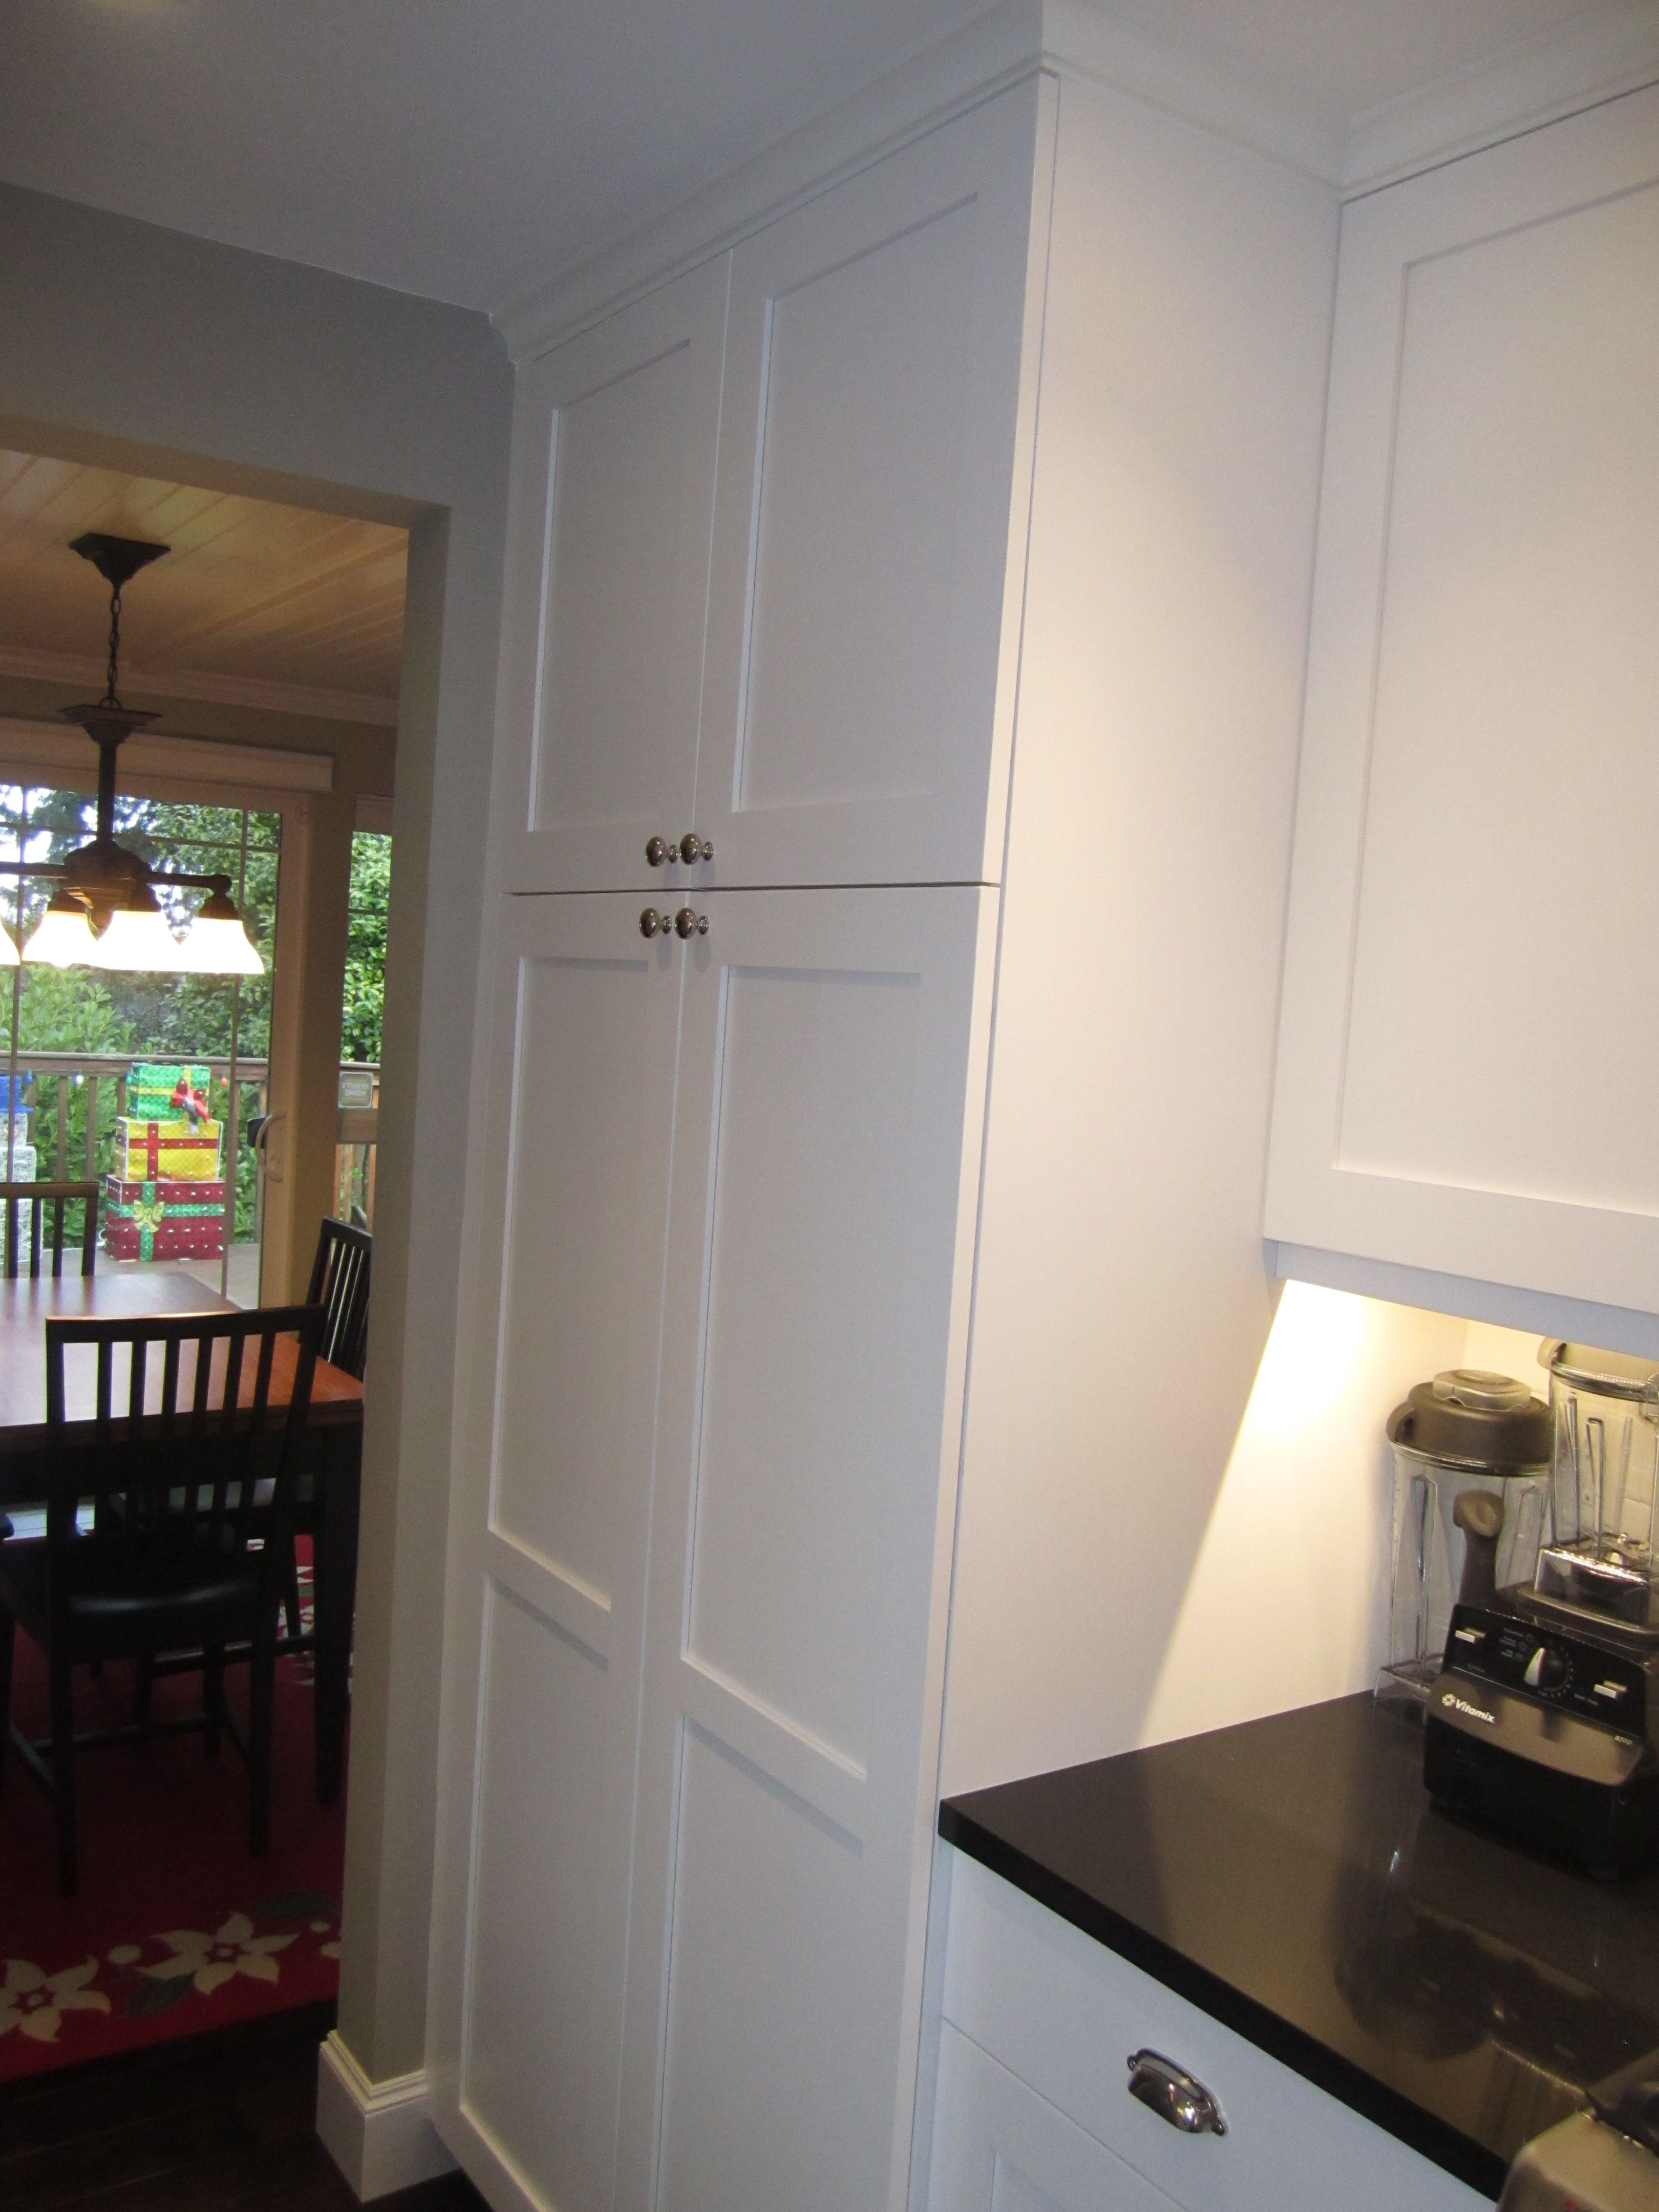 Floor to ceiling pantry with pull out shelves. (former